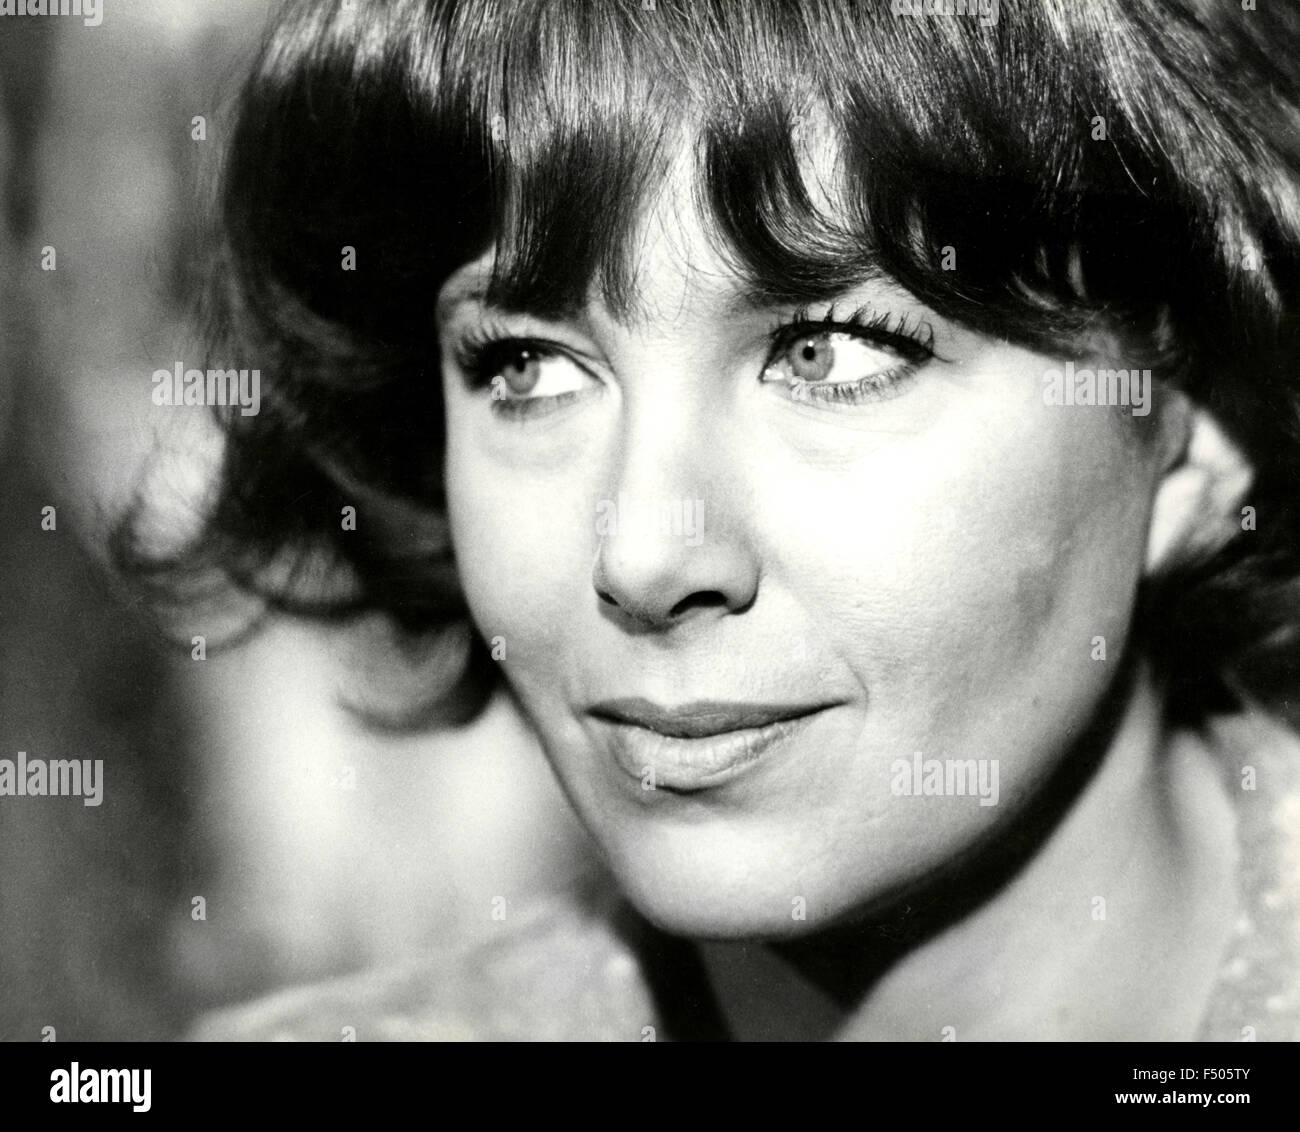 annie girardot dating Life magazine hailed 1965 as the year of julie christie when the young actress became before dating actor faye dunaway / annie girardot (1977) jane.